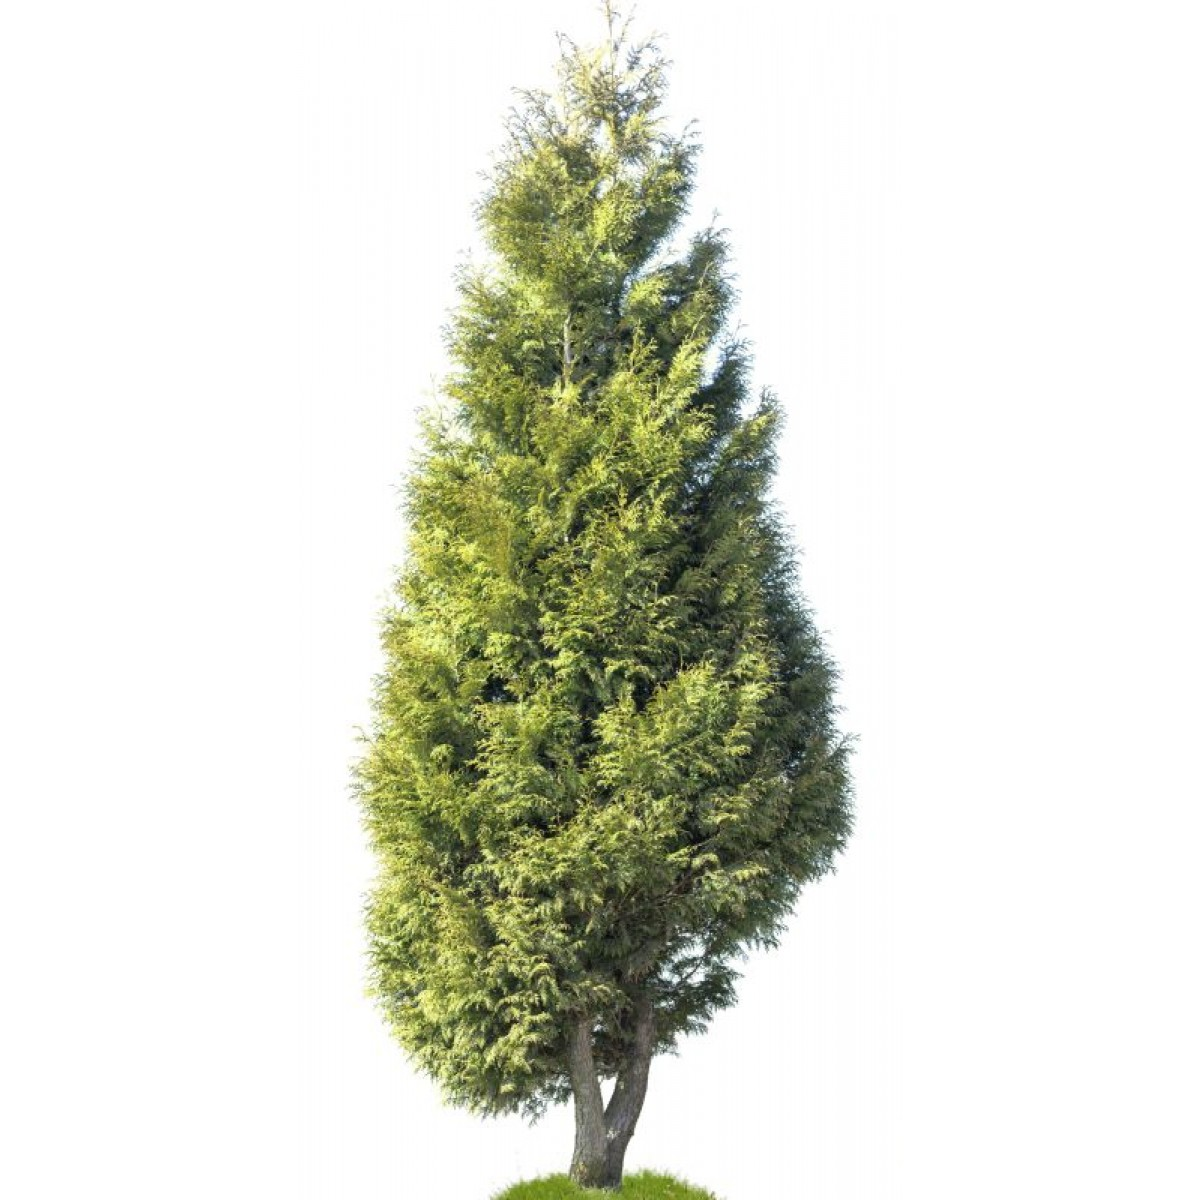 Western red cedar bowhayes trees store